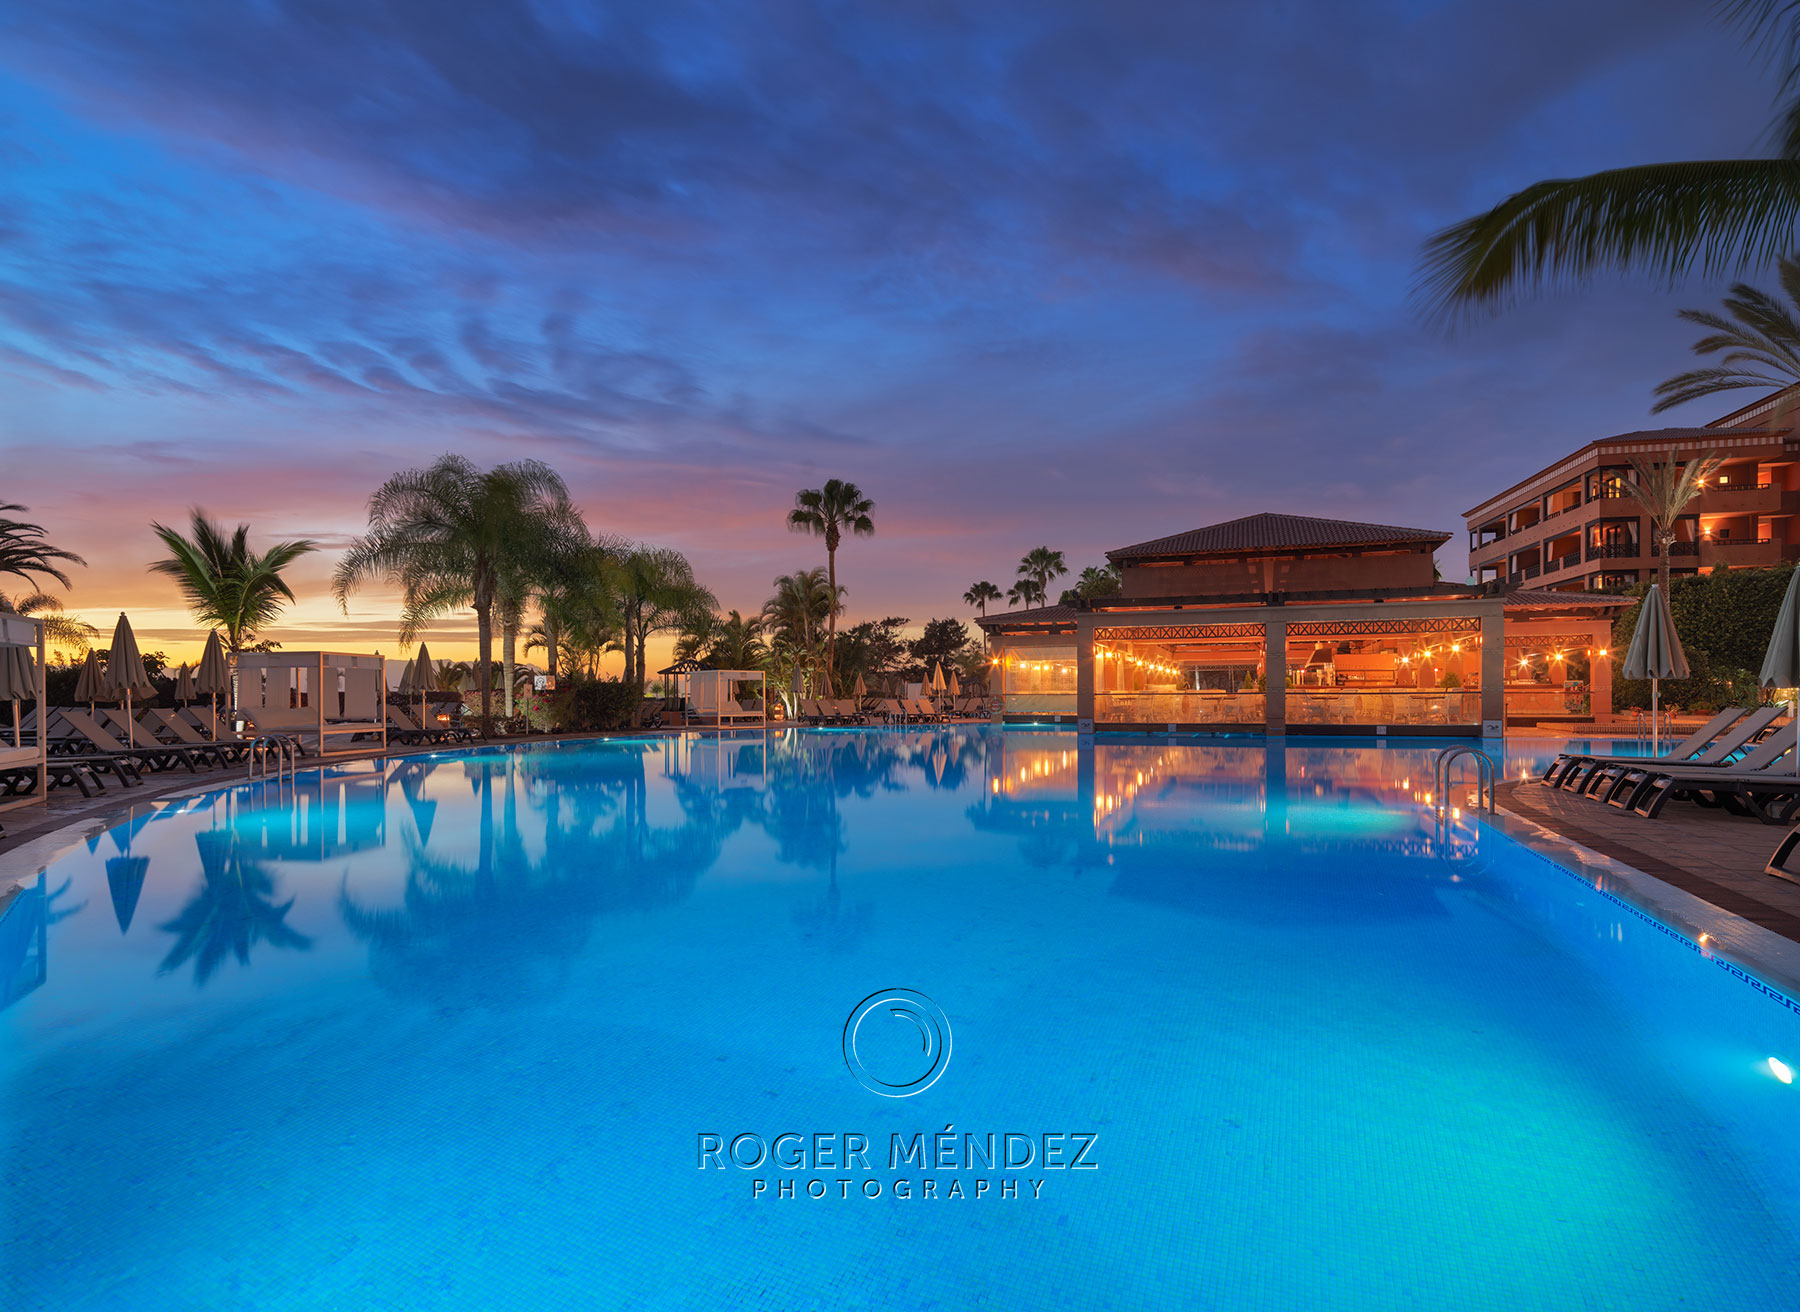 Main swimming pool at sunset